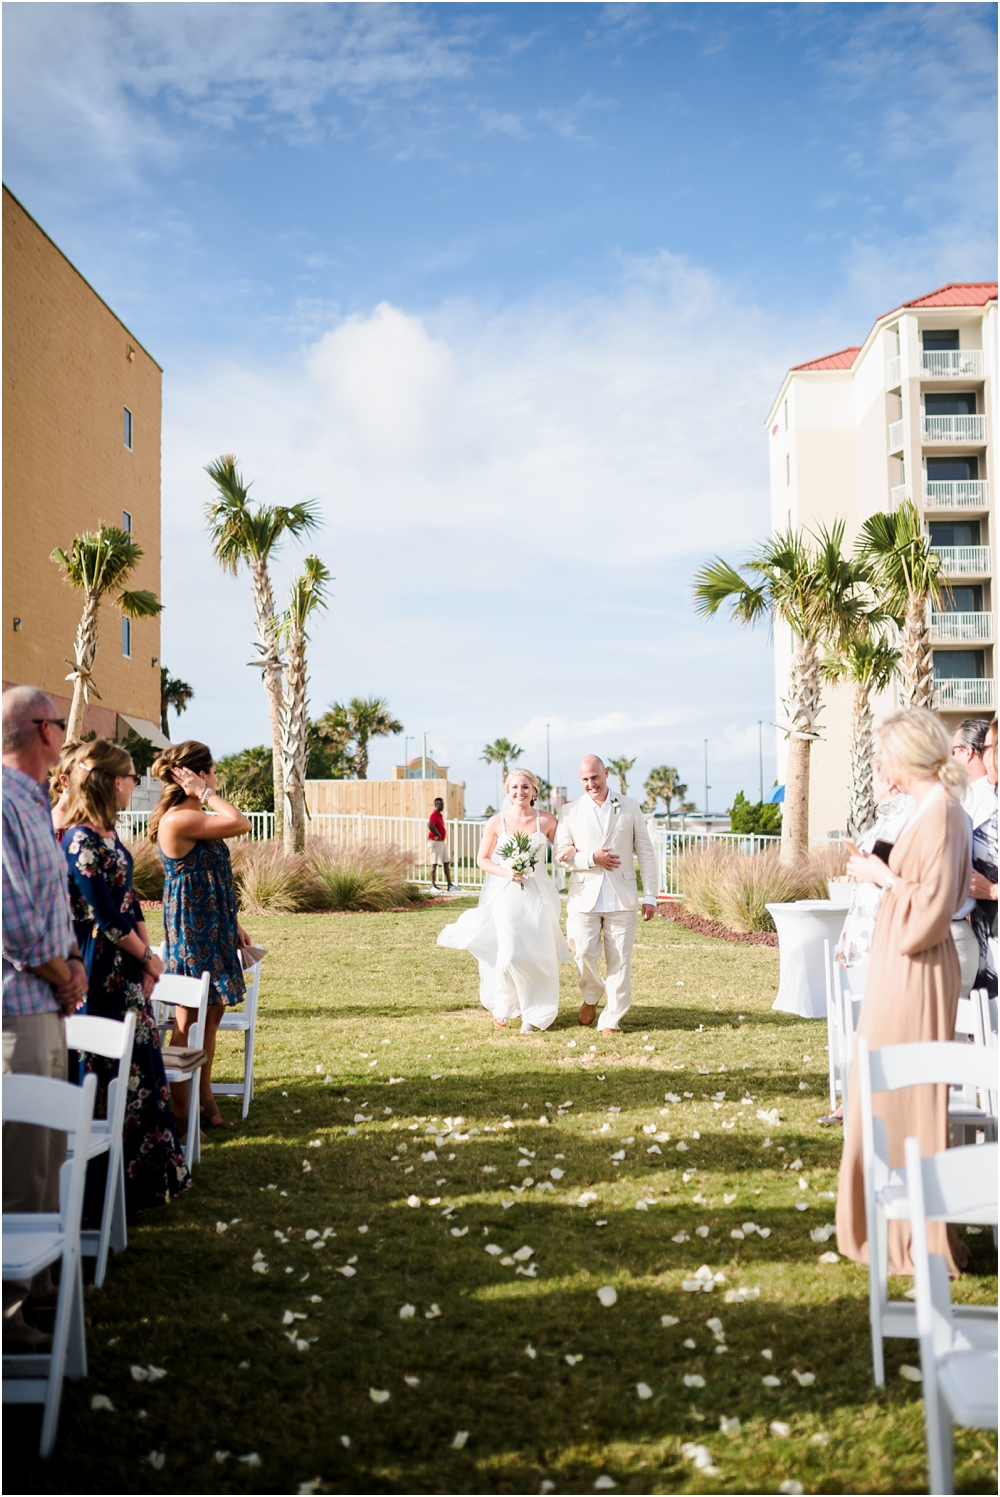 dillard-florida-wedding-photographer-panama-city-beach-dothan-tallahassee-kiersten-grant-photography-98.jpg